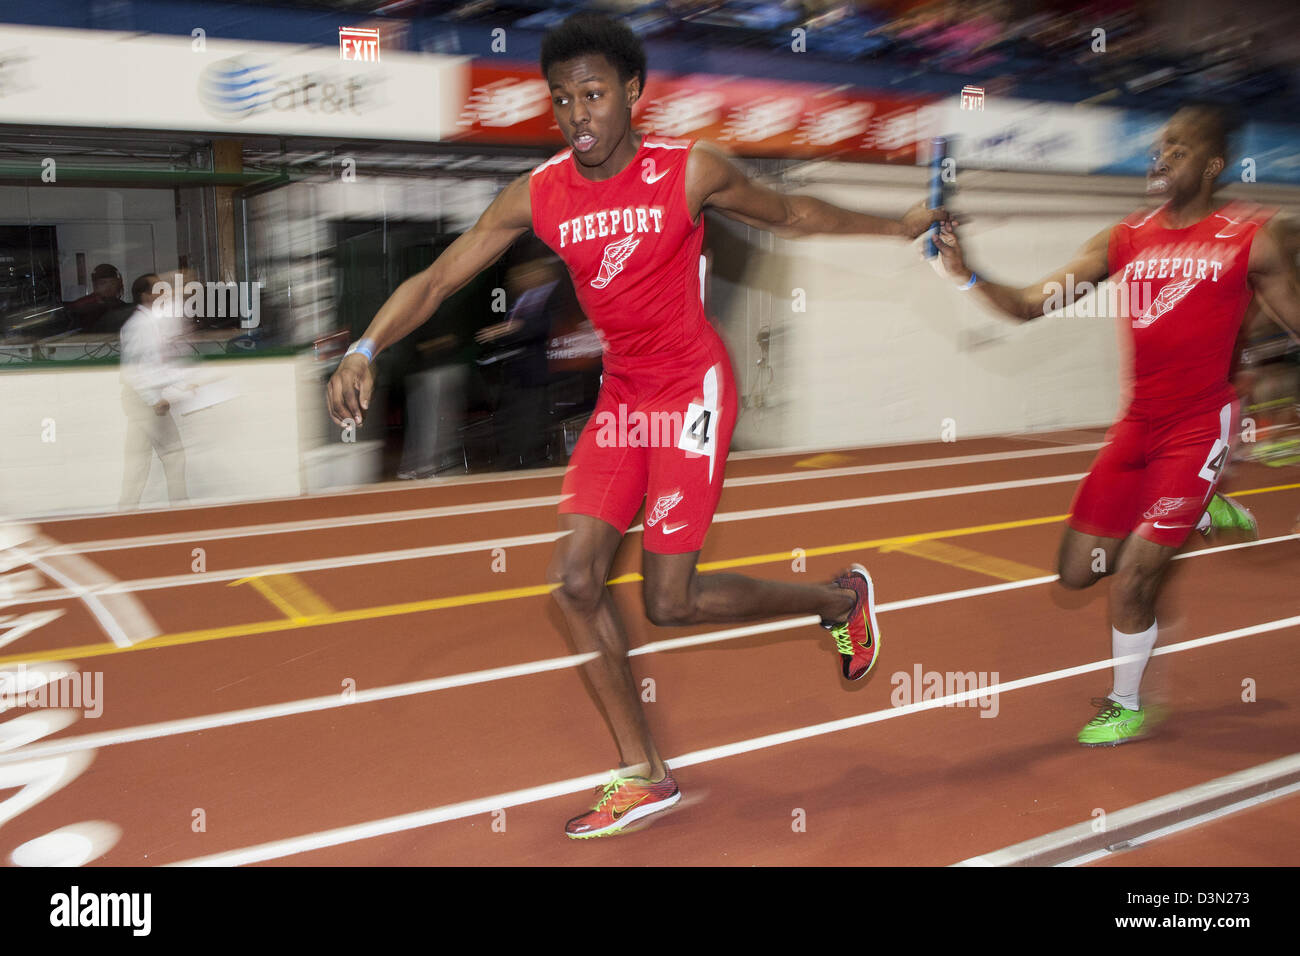 Freeport HS, NY passing the baton in the Long Island HS Boy's 4x400m at the 2013 Millrose Games. - Stock Image